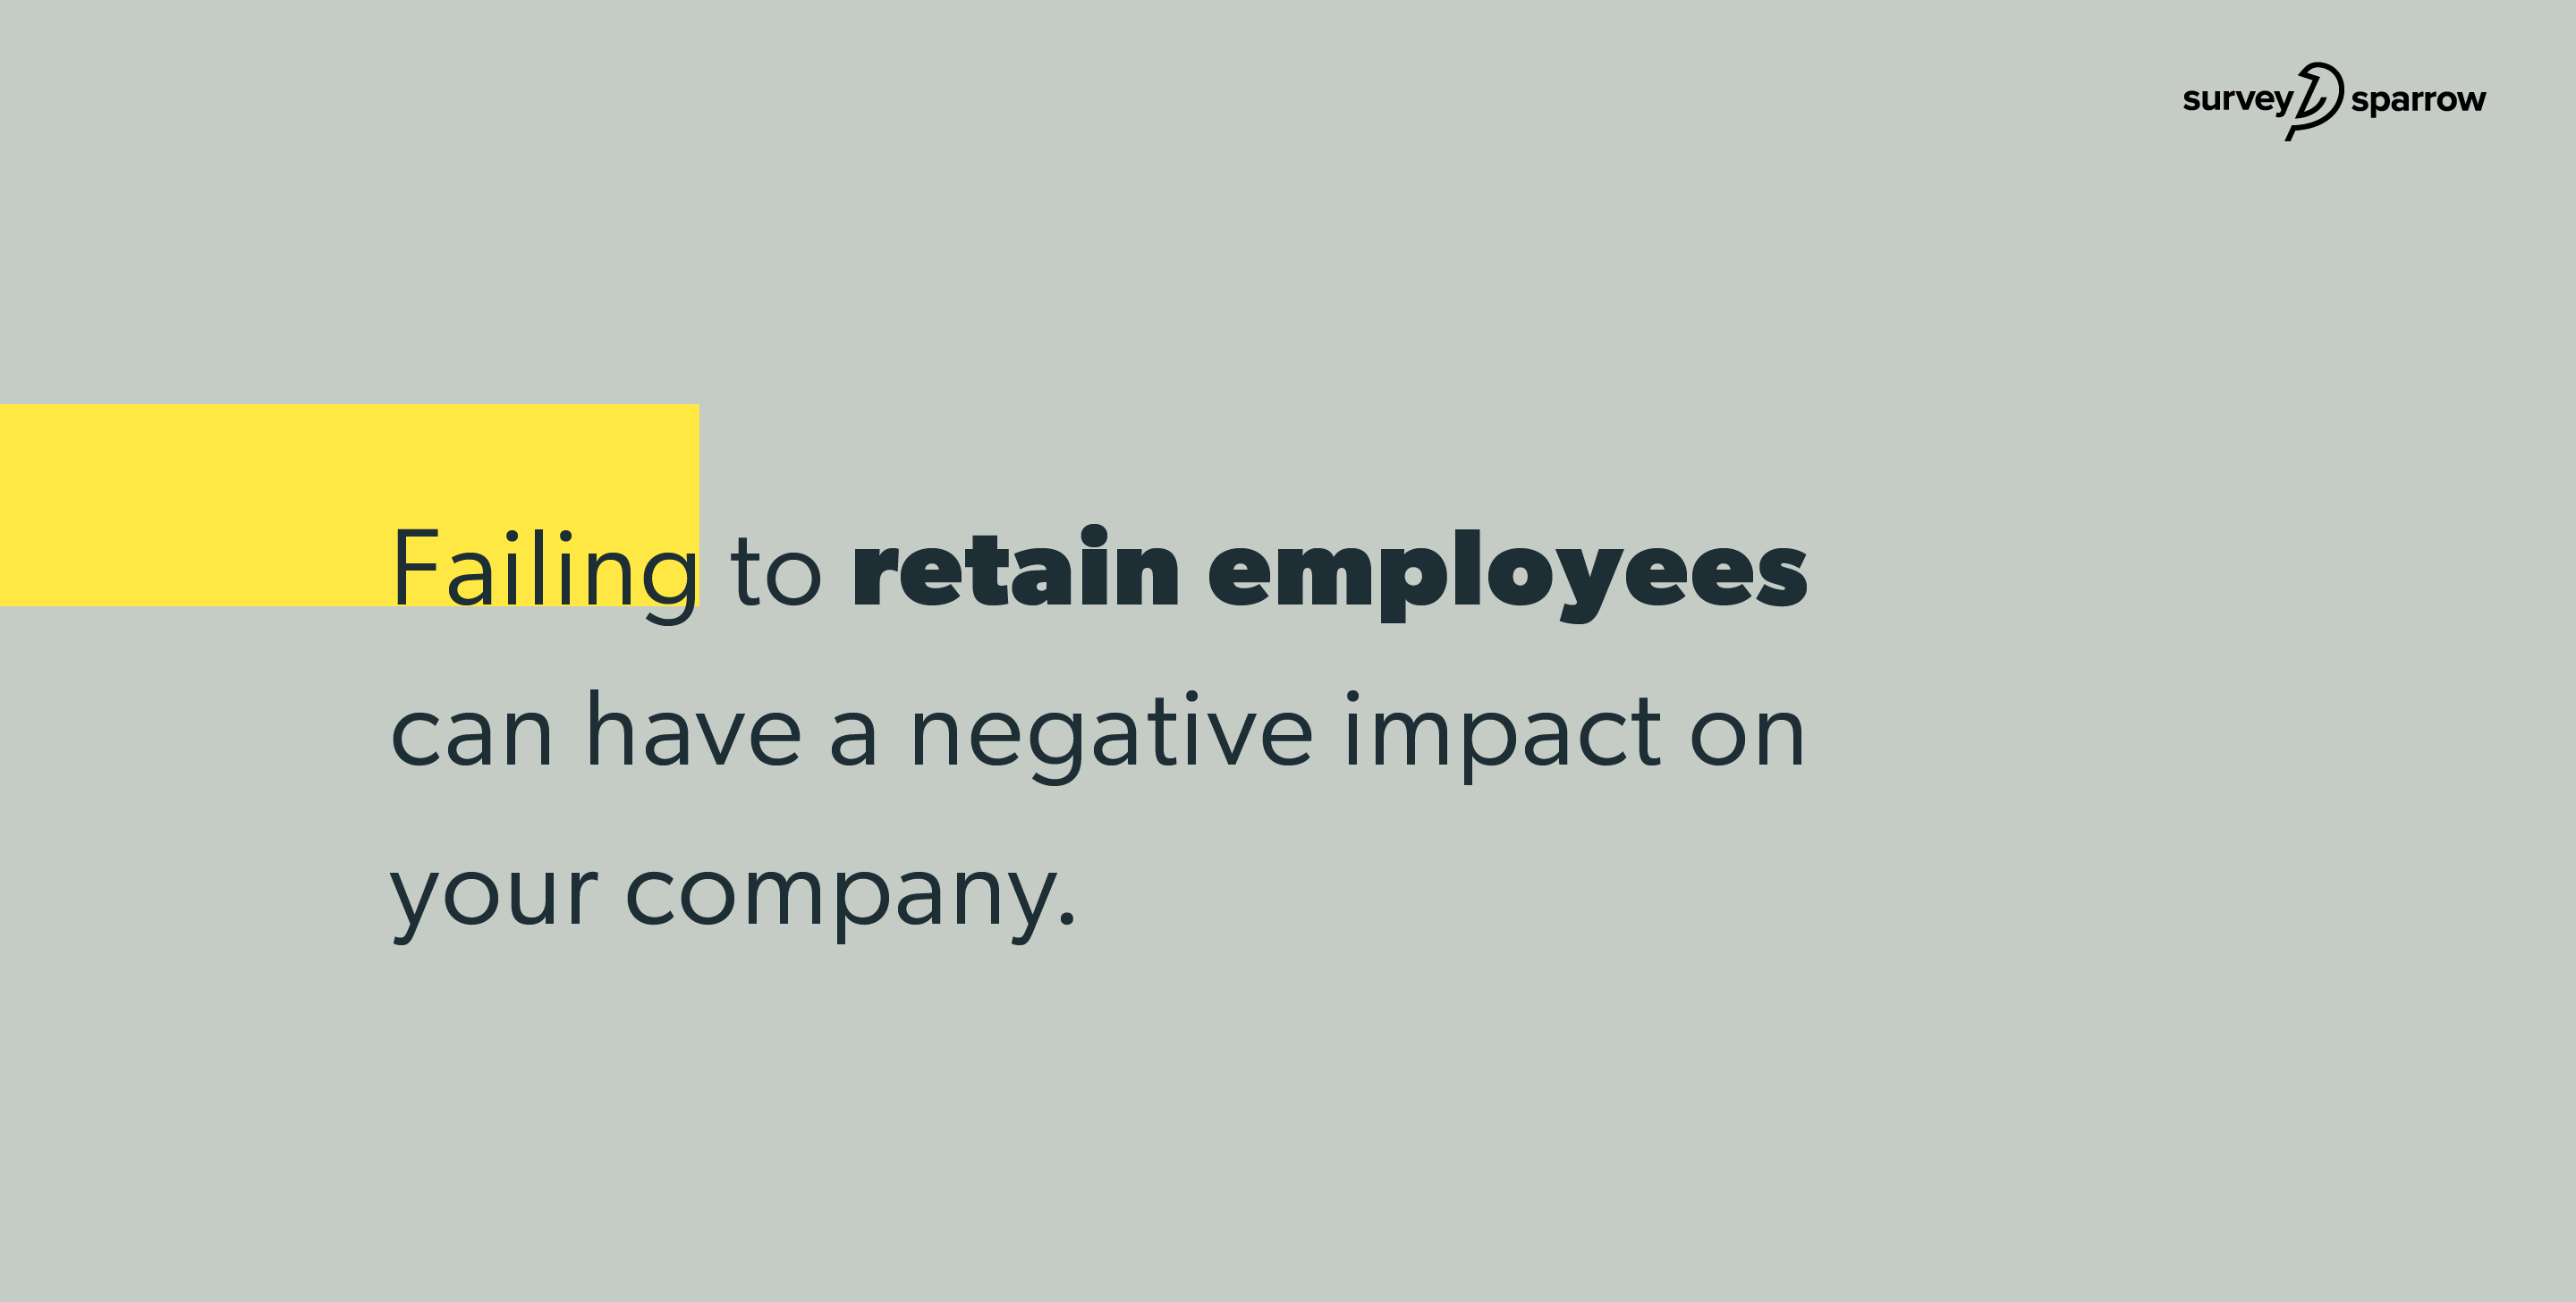 Failing to retain employees can have a negative impact on your company.